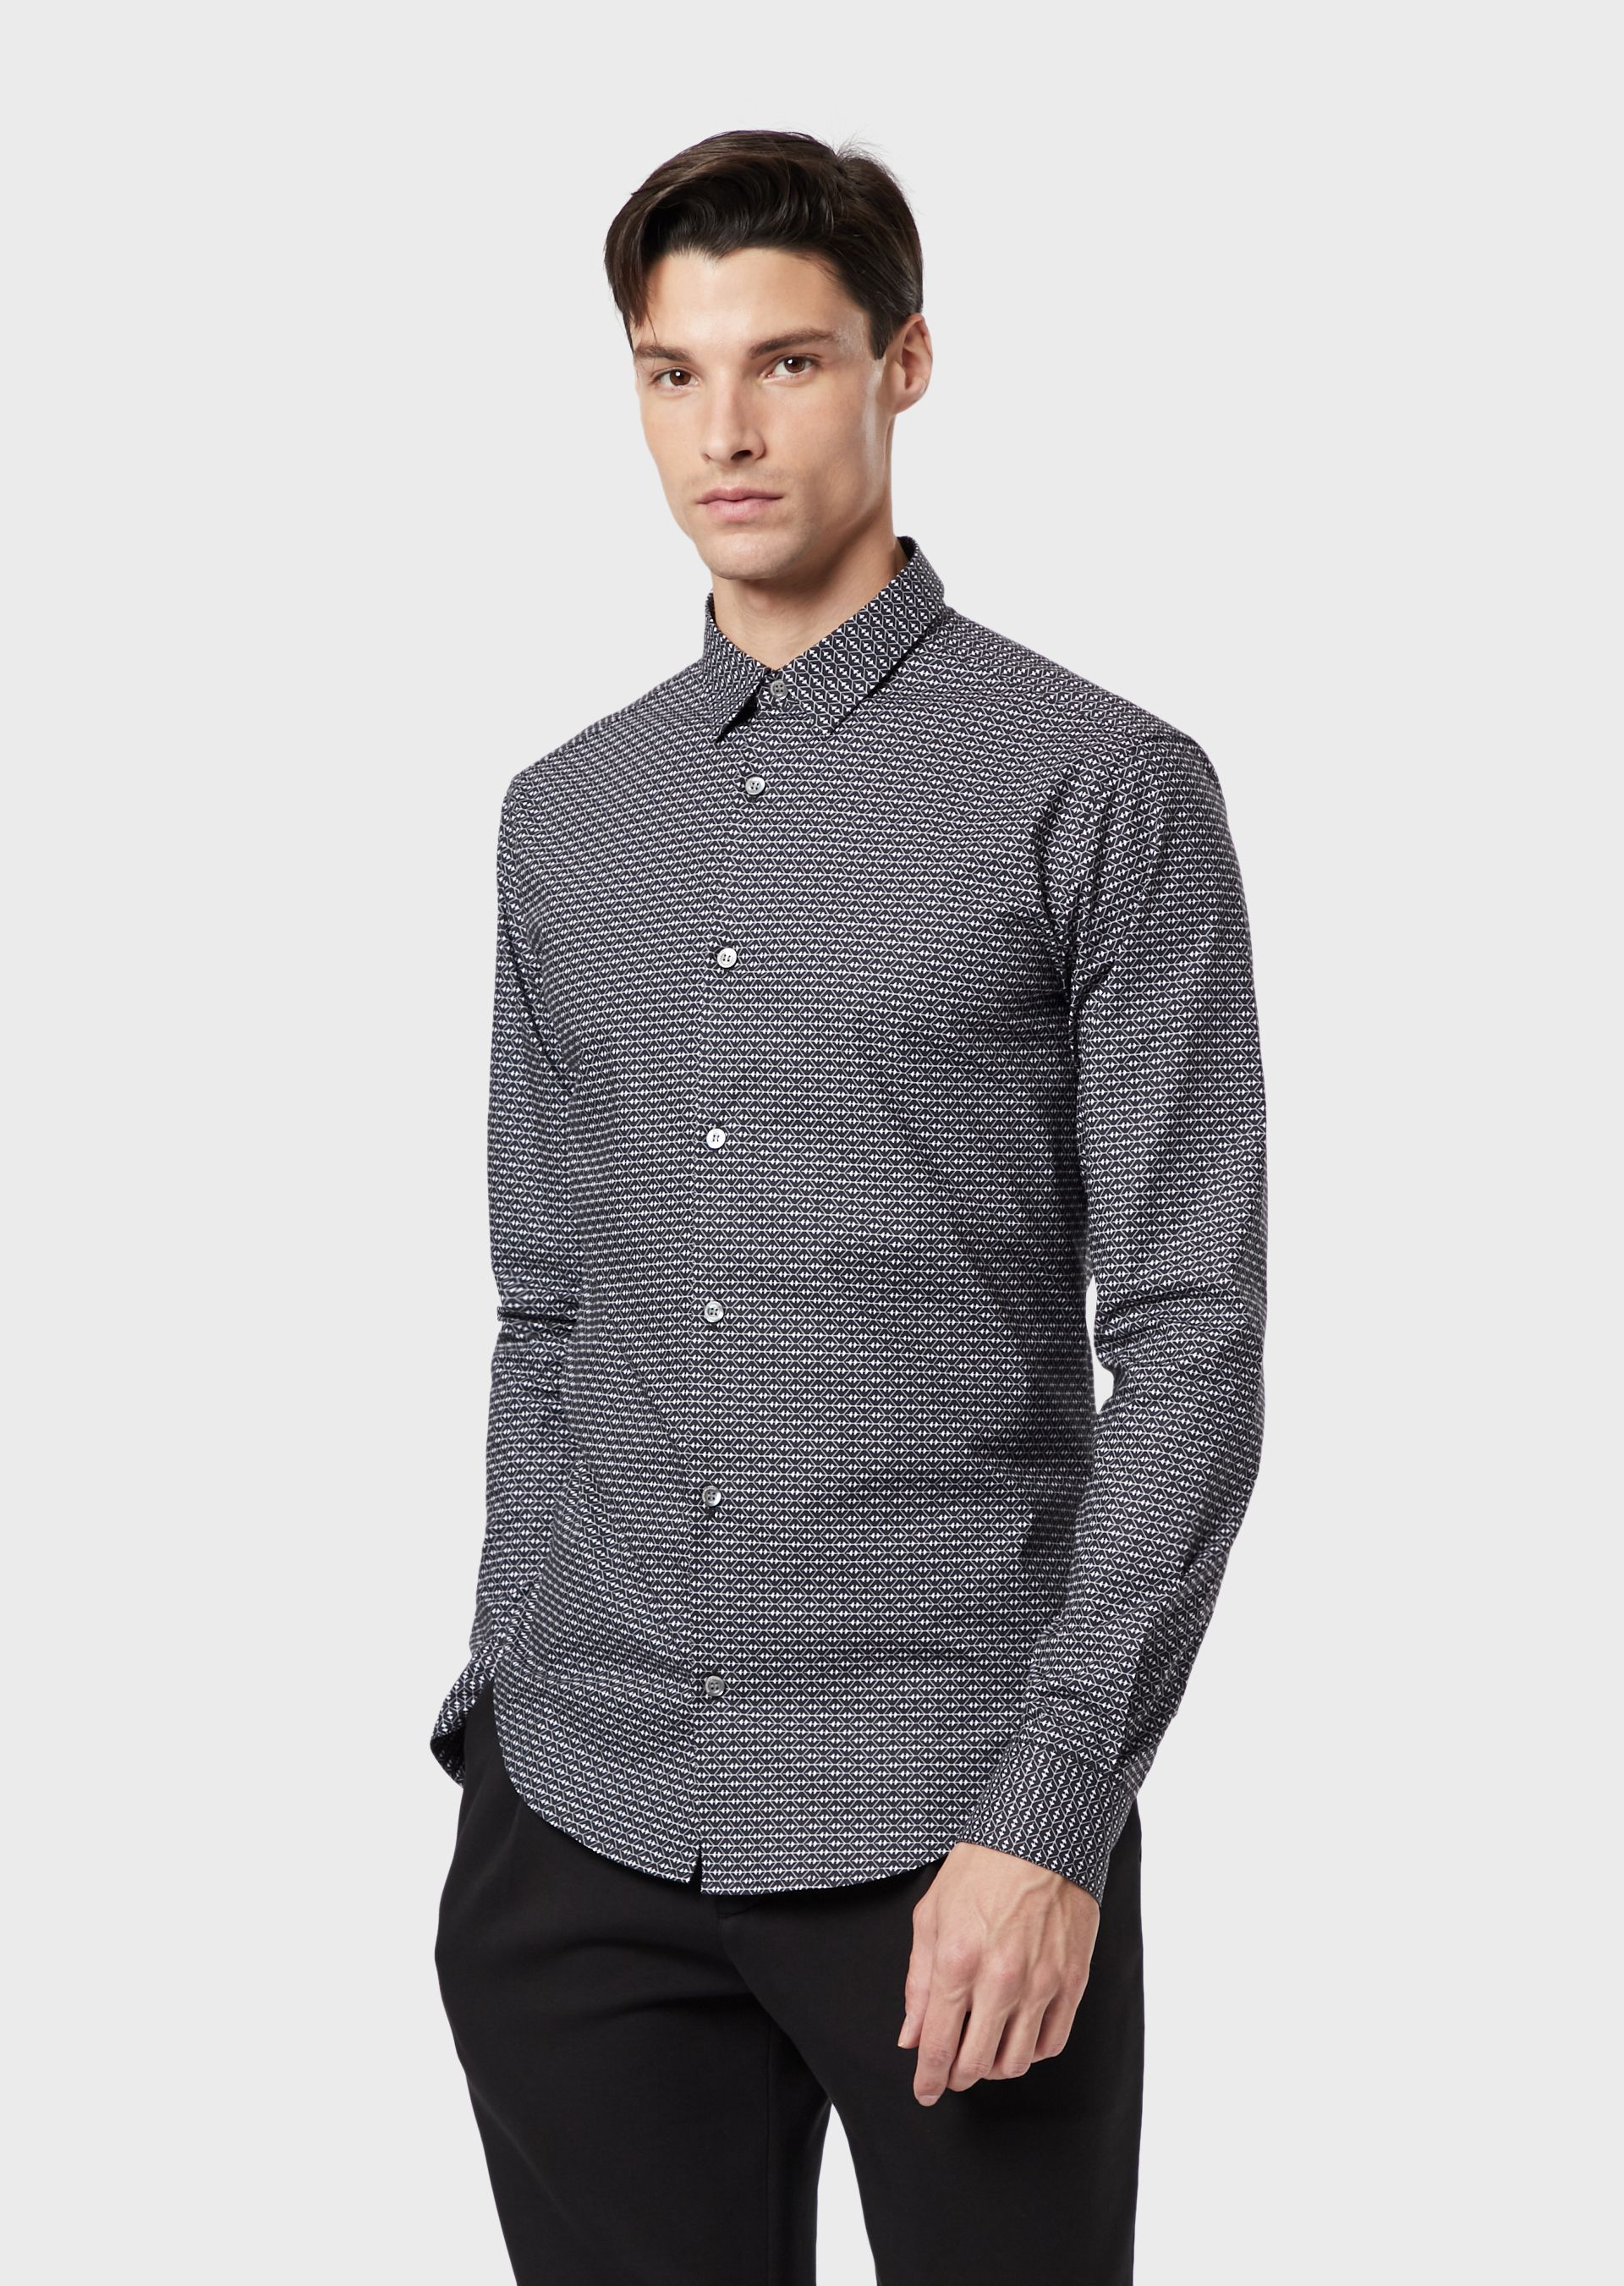 Emporio Armani Casual Shirts - Item 38867881 In Black